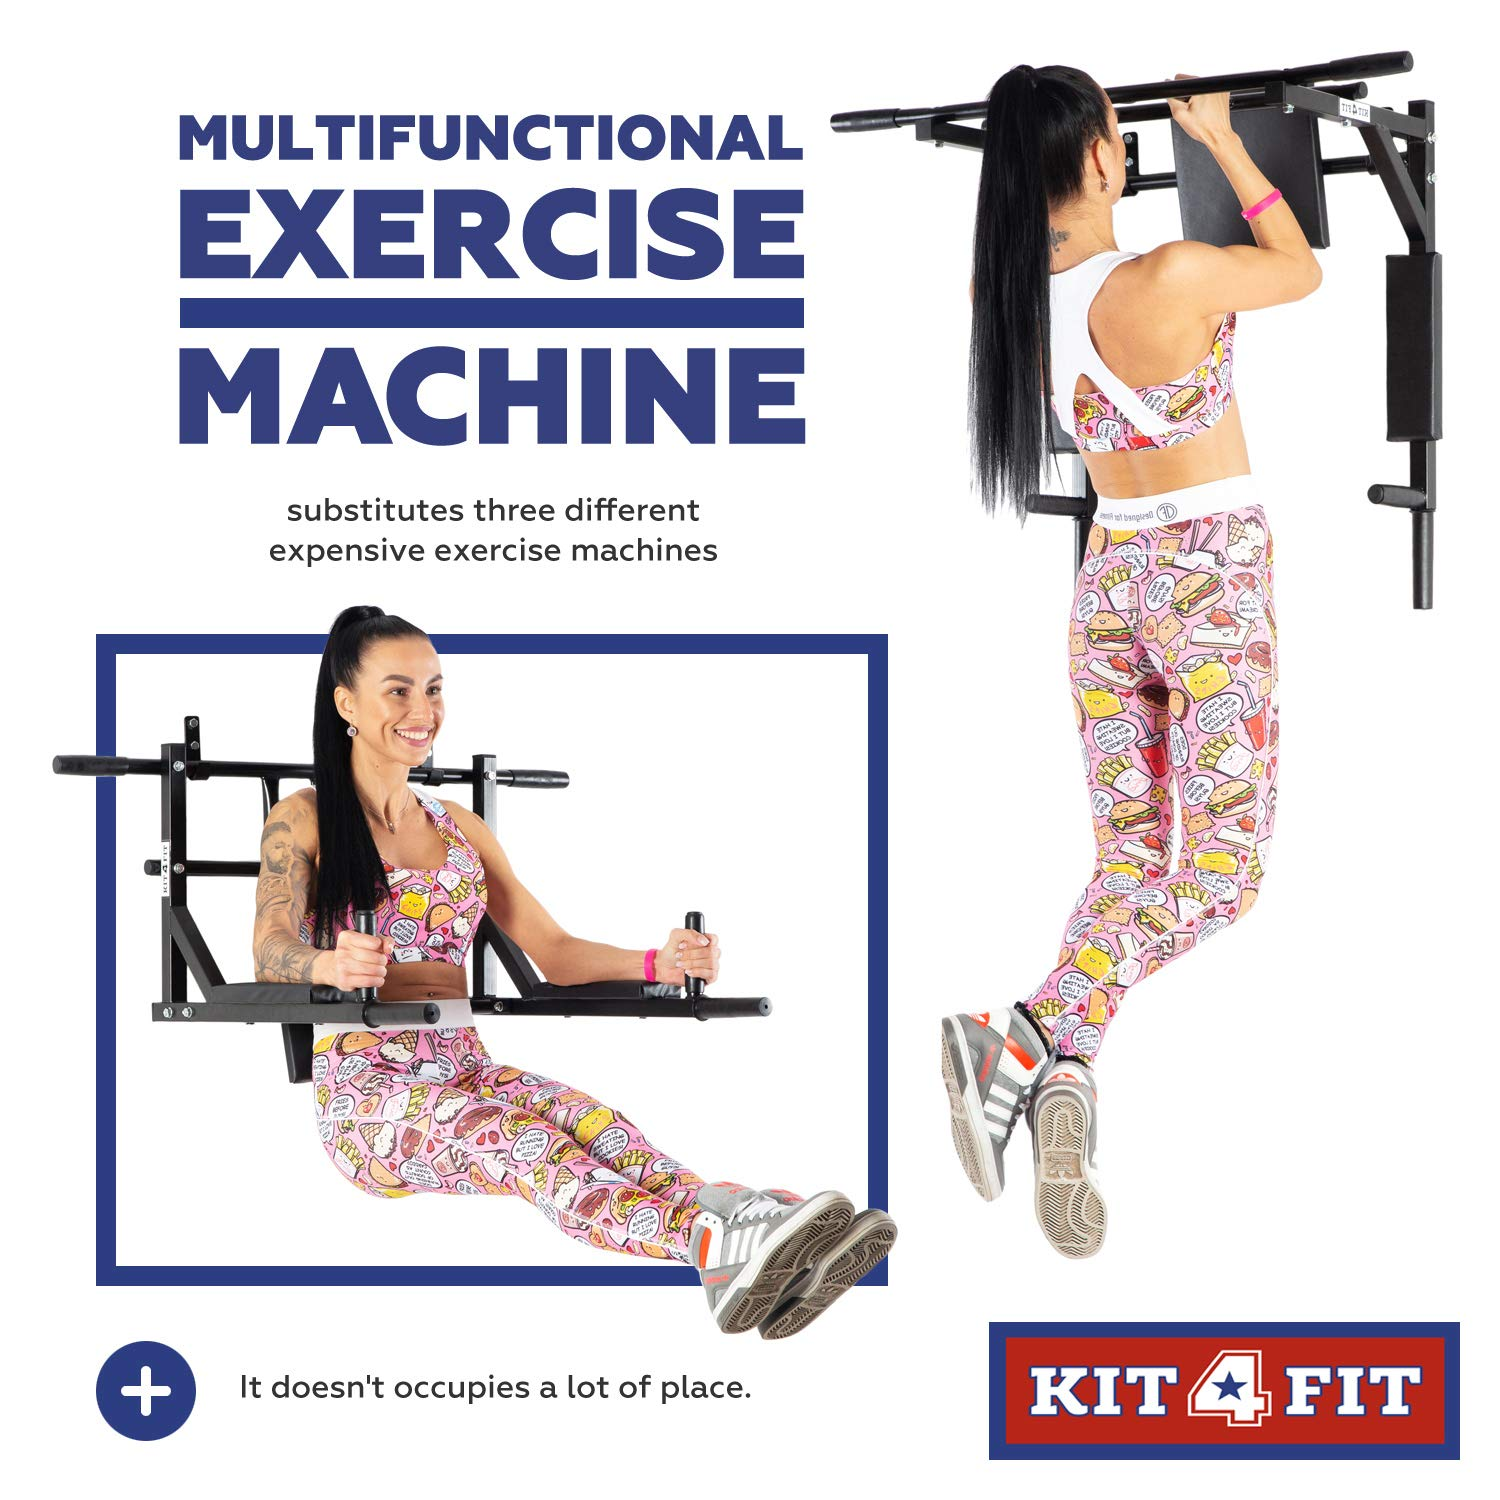 Wall Mounted Pull Up Bar and Dip Station with Vertical Knee Raise Station Indoor Home Exercise Equipment for Men Woman and Kids Great for Workout and Fitness (Black) by Kit4Fit (Image #4)